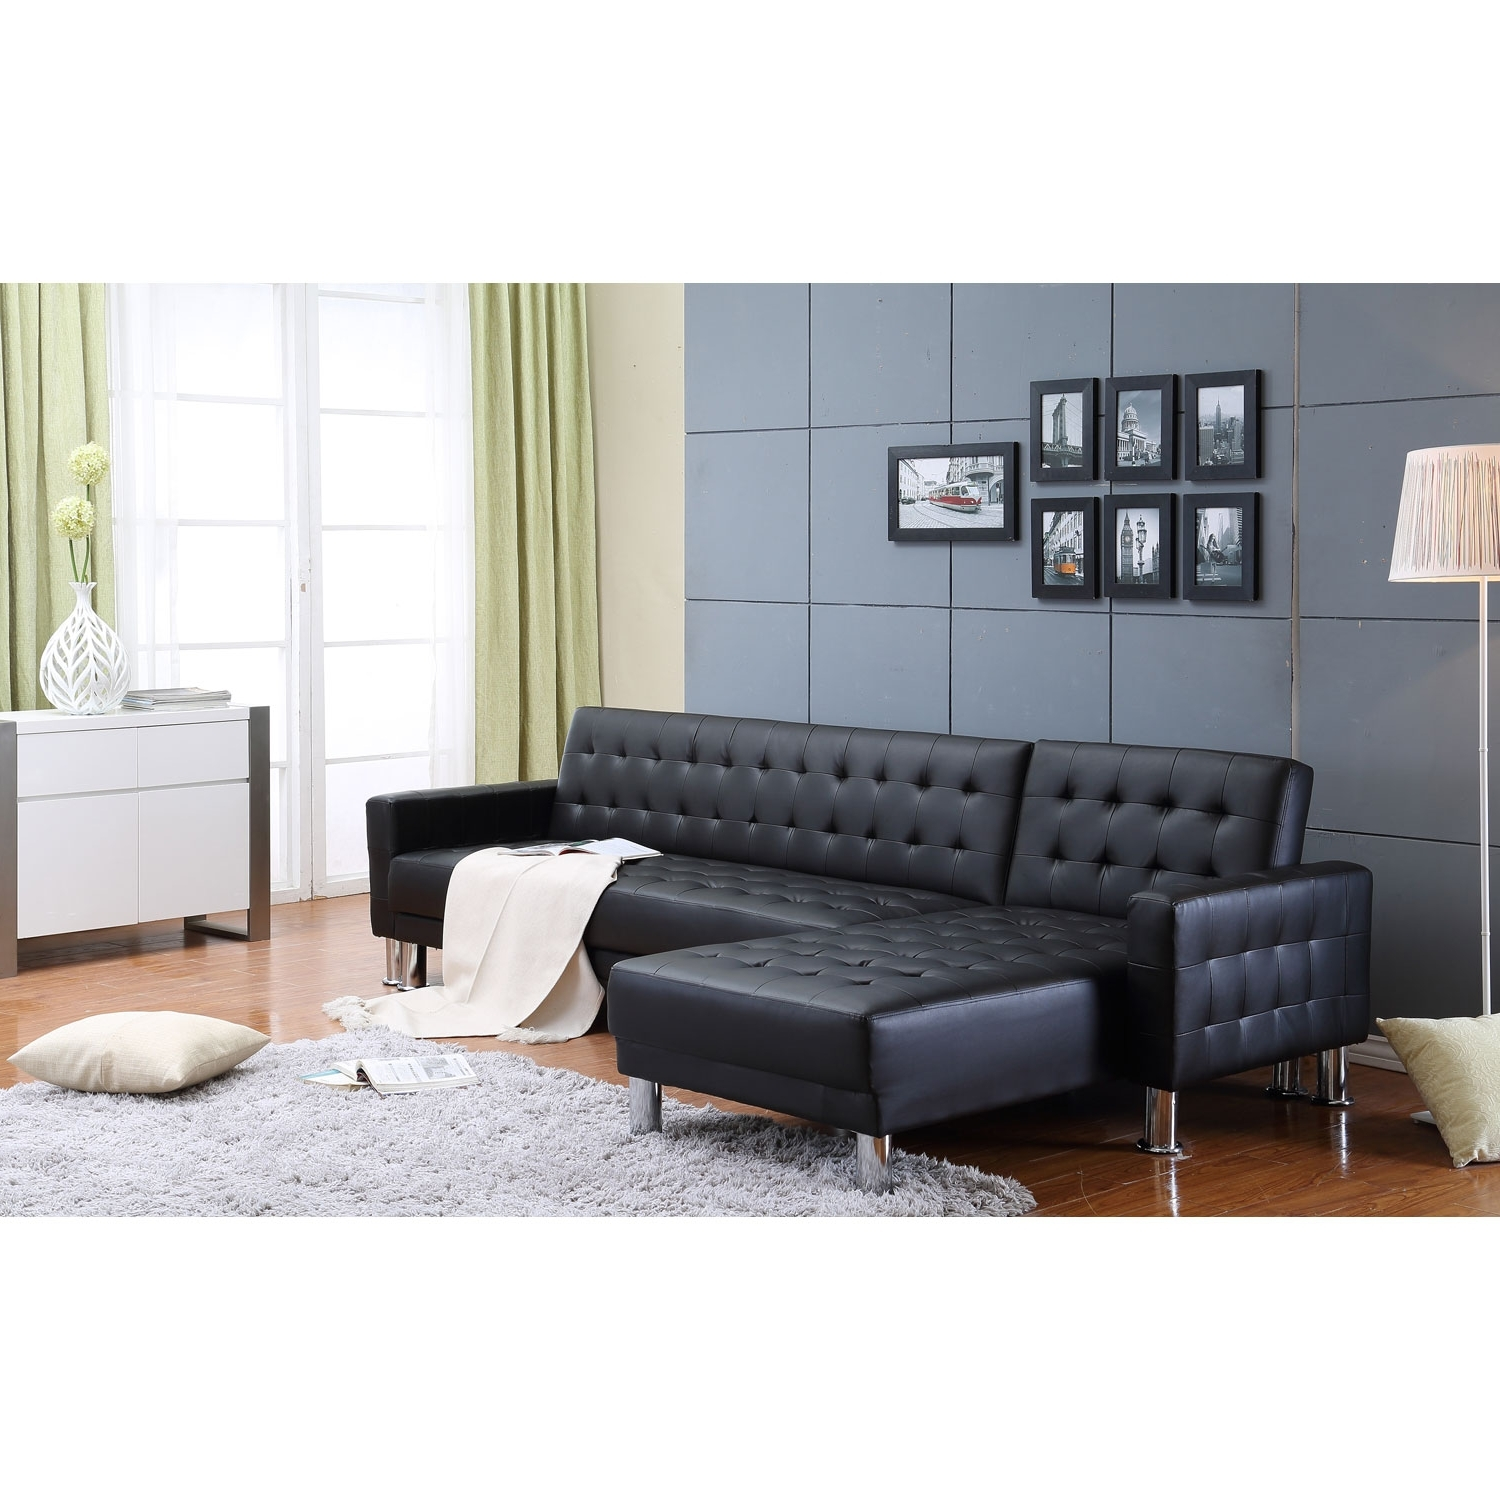 New Sofa Kijiji 2019 Latest Kijiji Edmonton Sectional Sofas